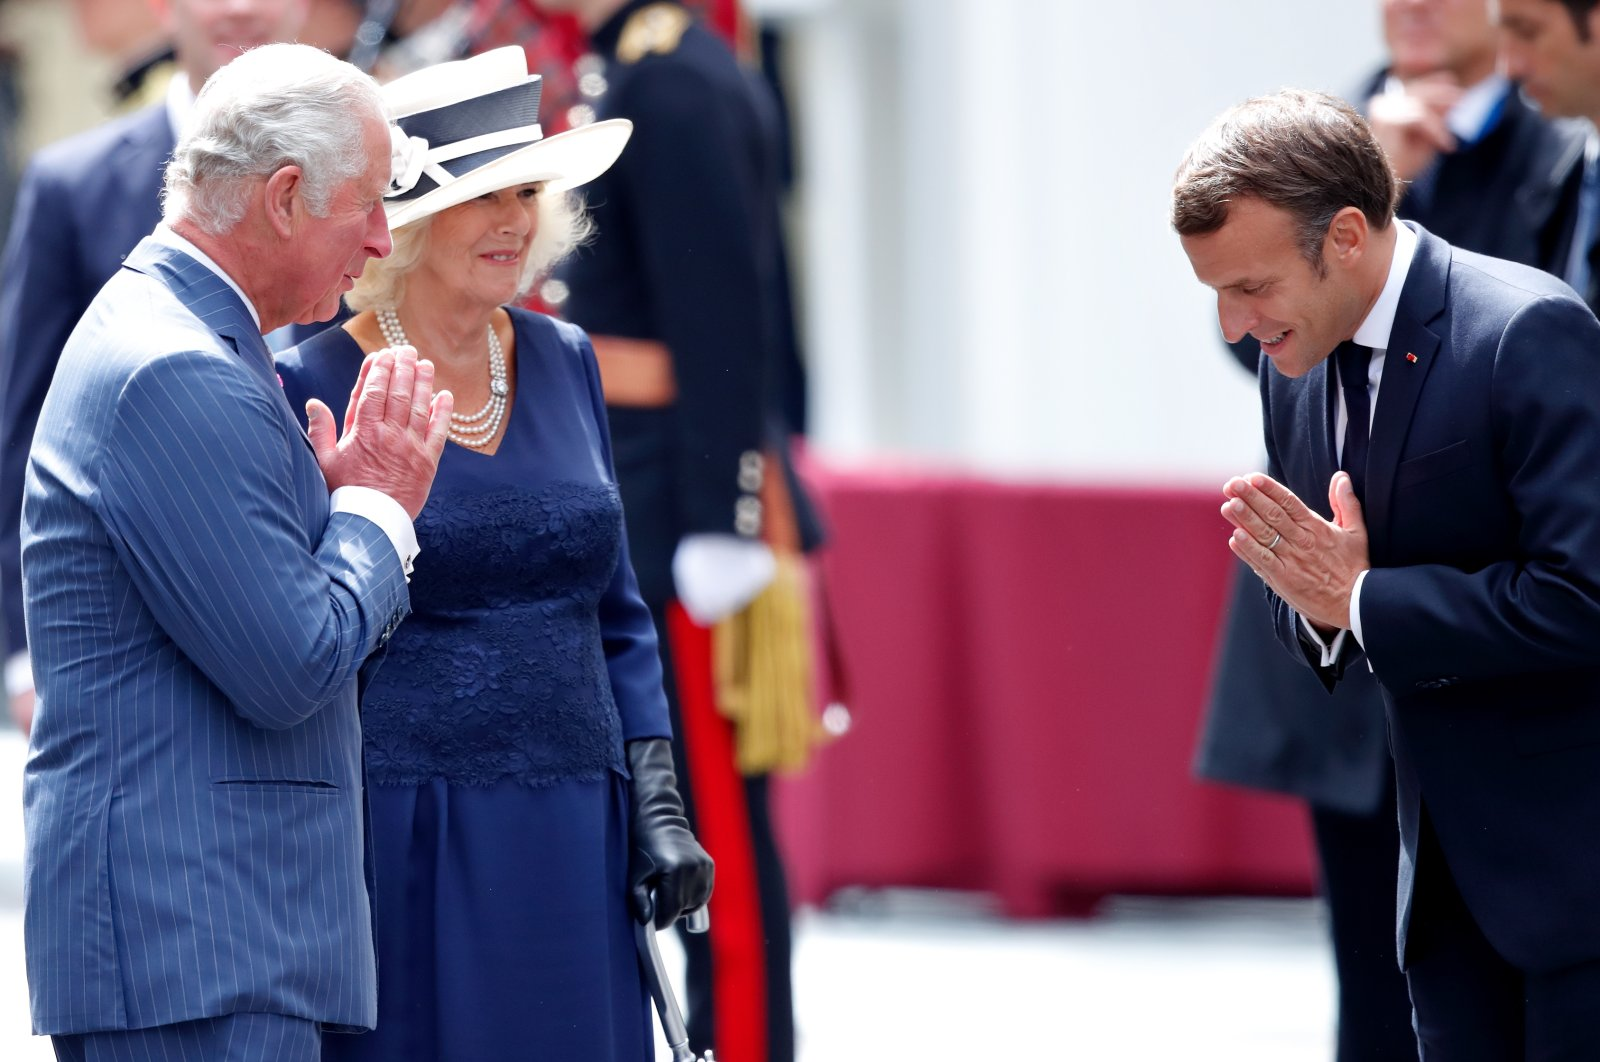 Prince Charles, Prince of Wales, accompanied by Camilla, Duchess of Cornwall, and French President Emmanuel Macron make namaste hand gestures as they say goodbye after attending a ceremony in Carlton Gardens, London, U.K., June 18, 2020. (Photo by Getty Images)